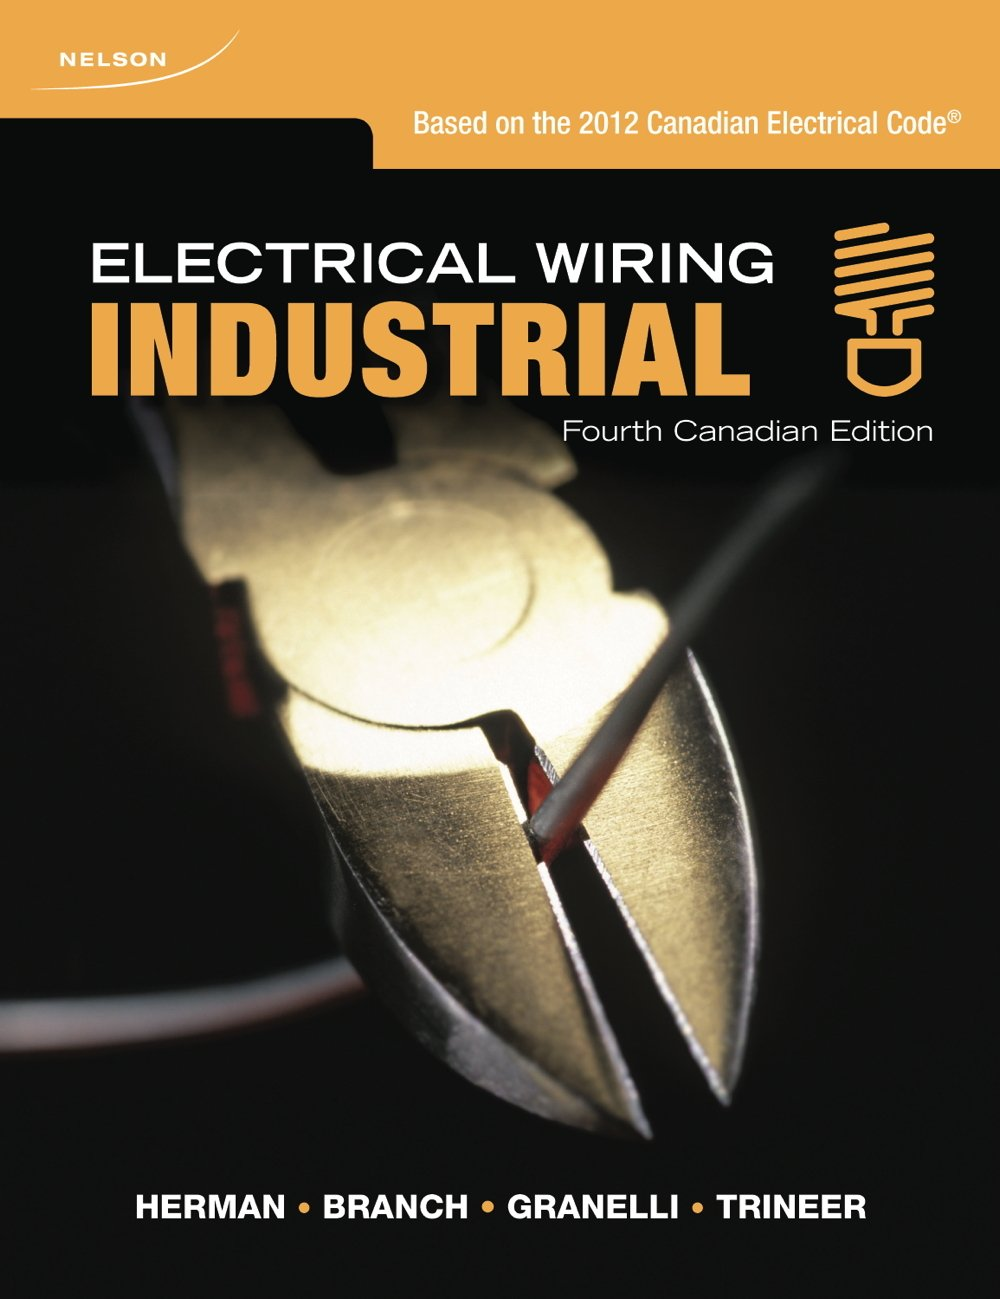 electrical wiring industrial industrial 9780176503826 amazon rh amazon com electrical wiring industrial 16th edition electrical wiring industrial 15th edition pdf